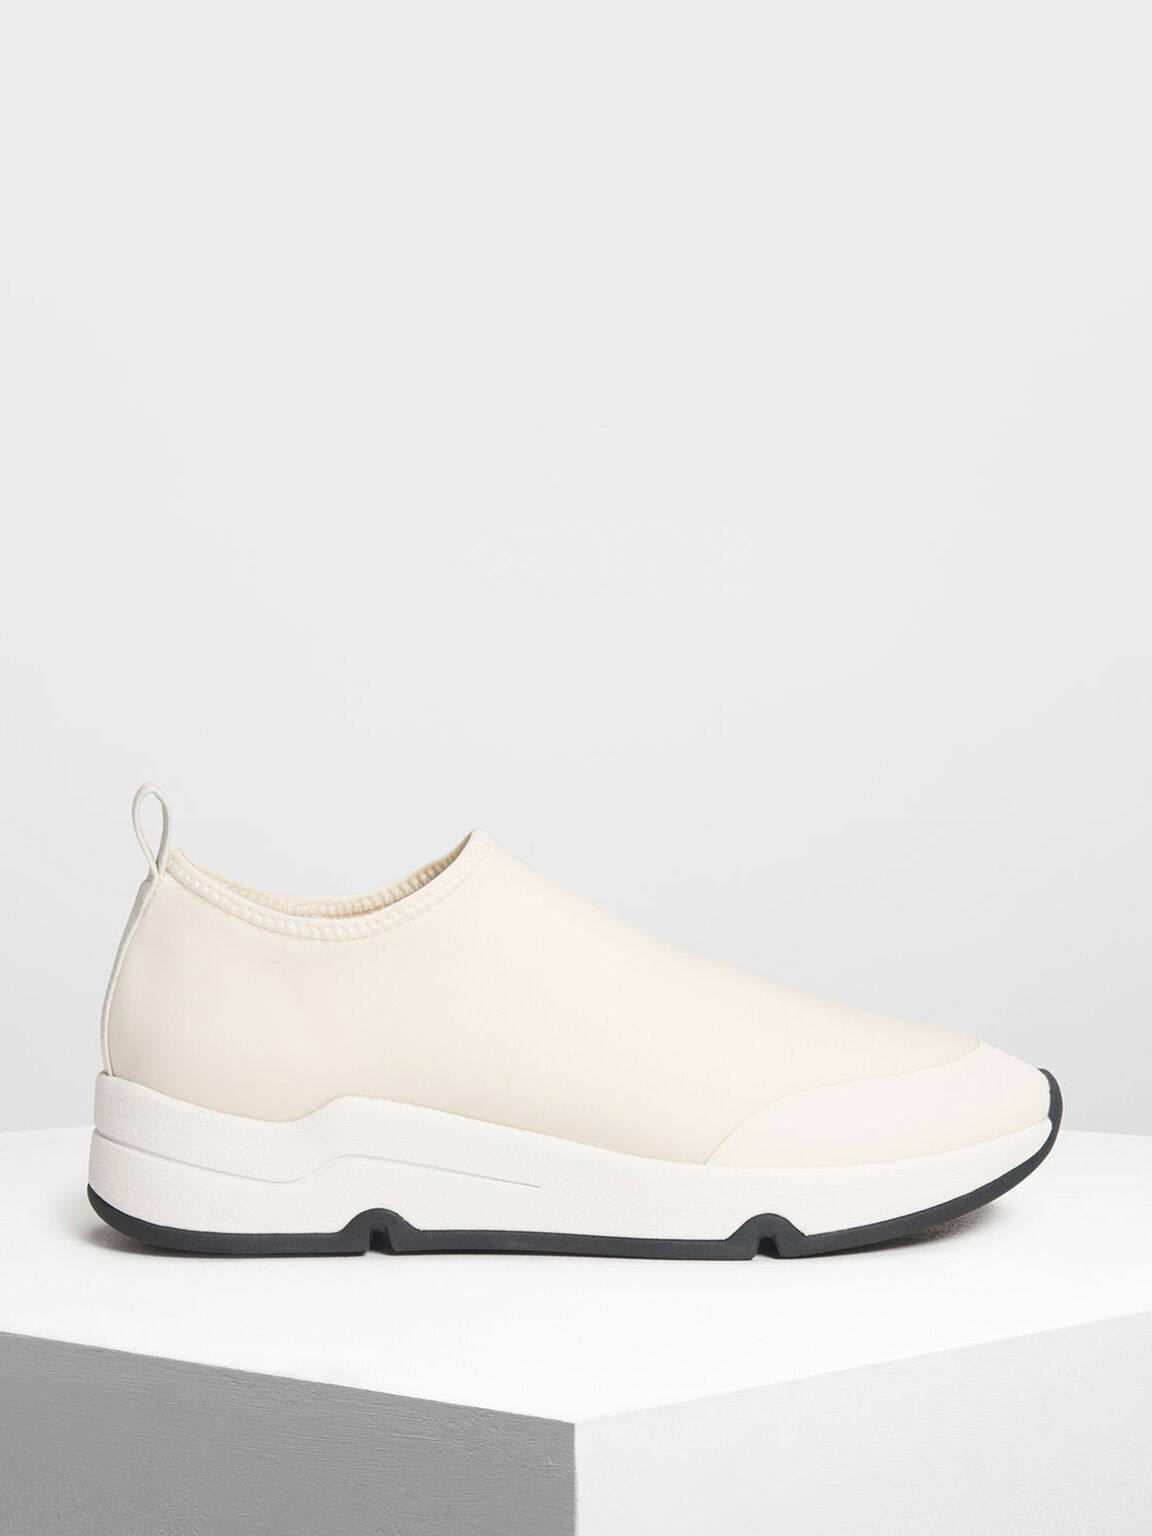 Slip-On Sneakers, Cream, hi-res